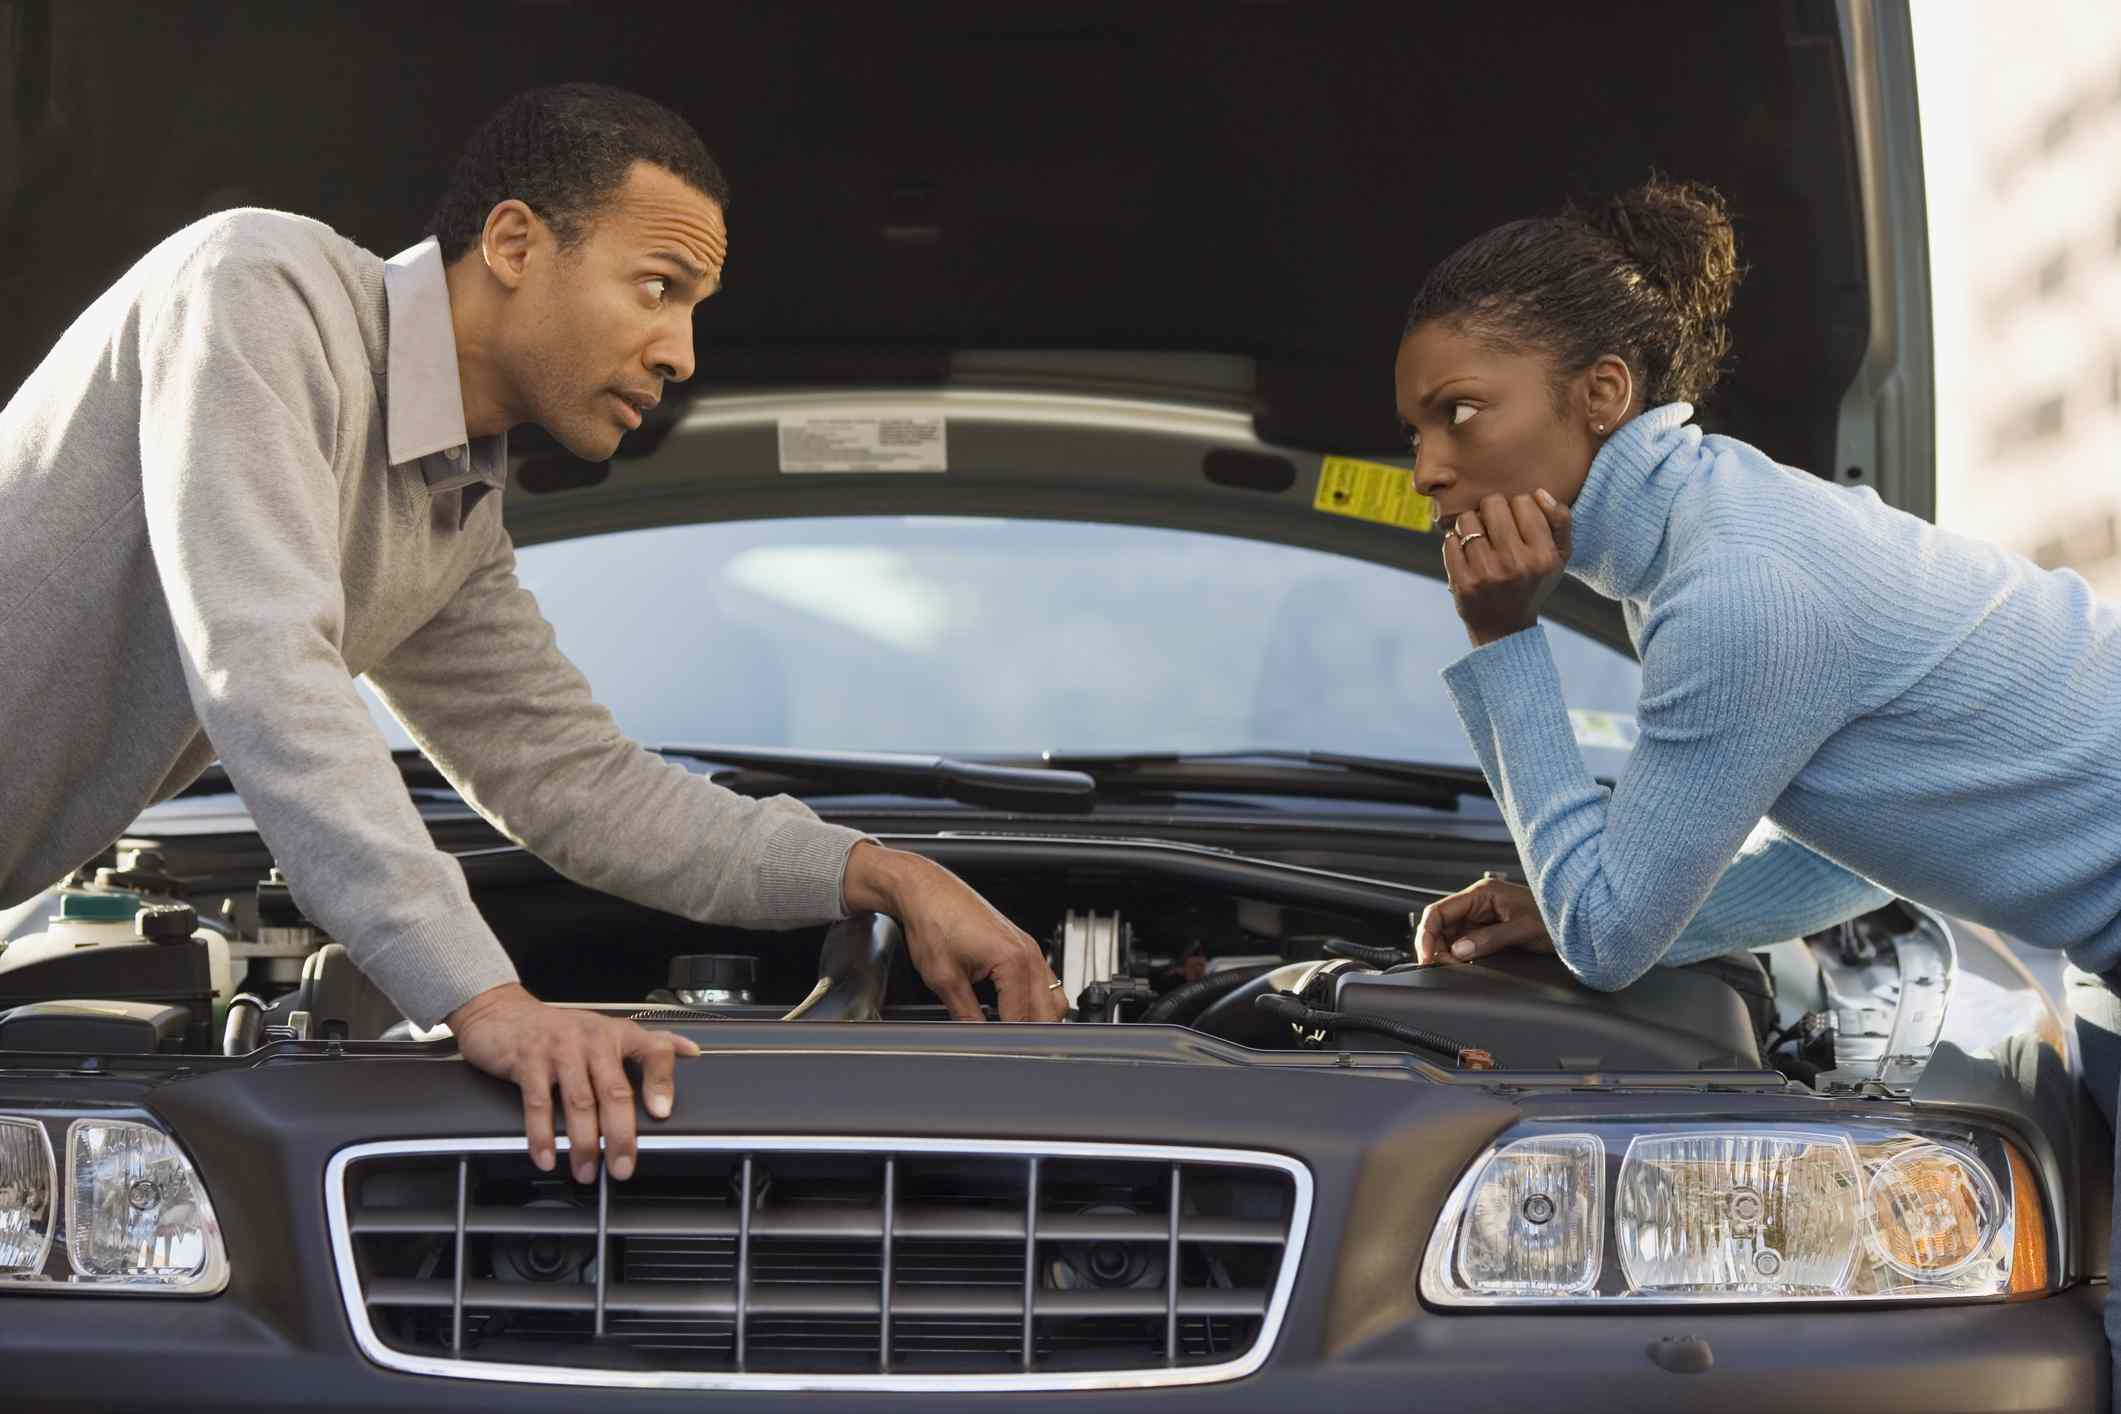 Man talking to woman over car